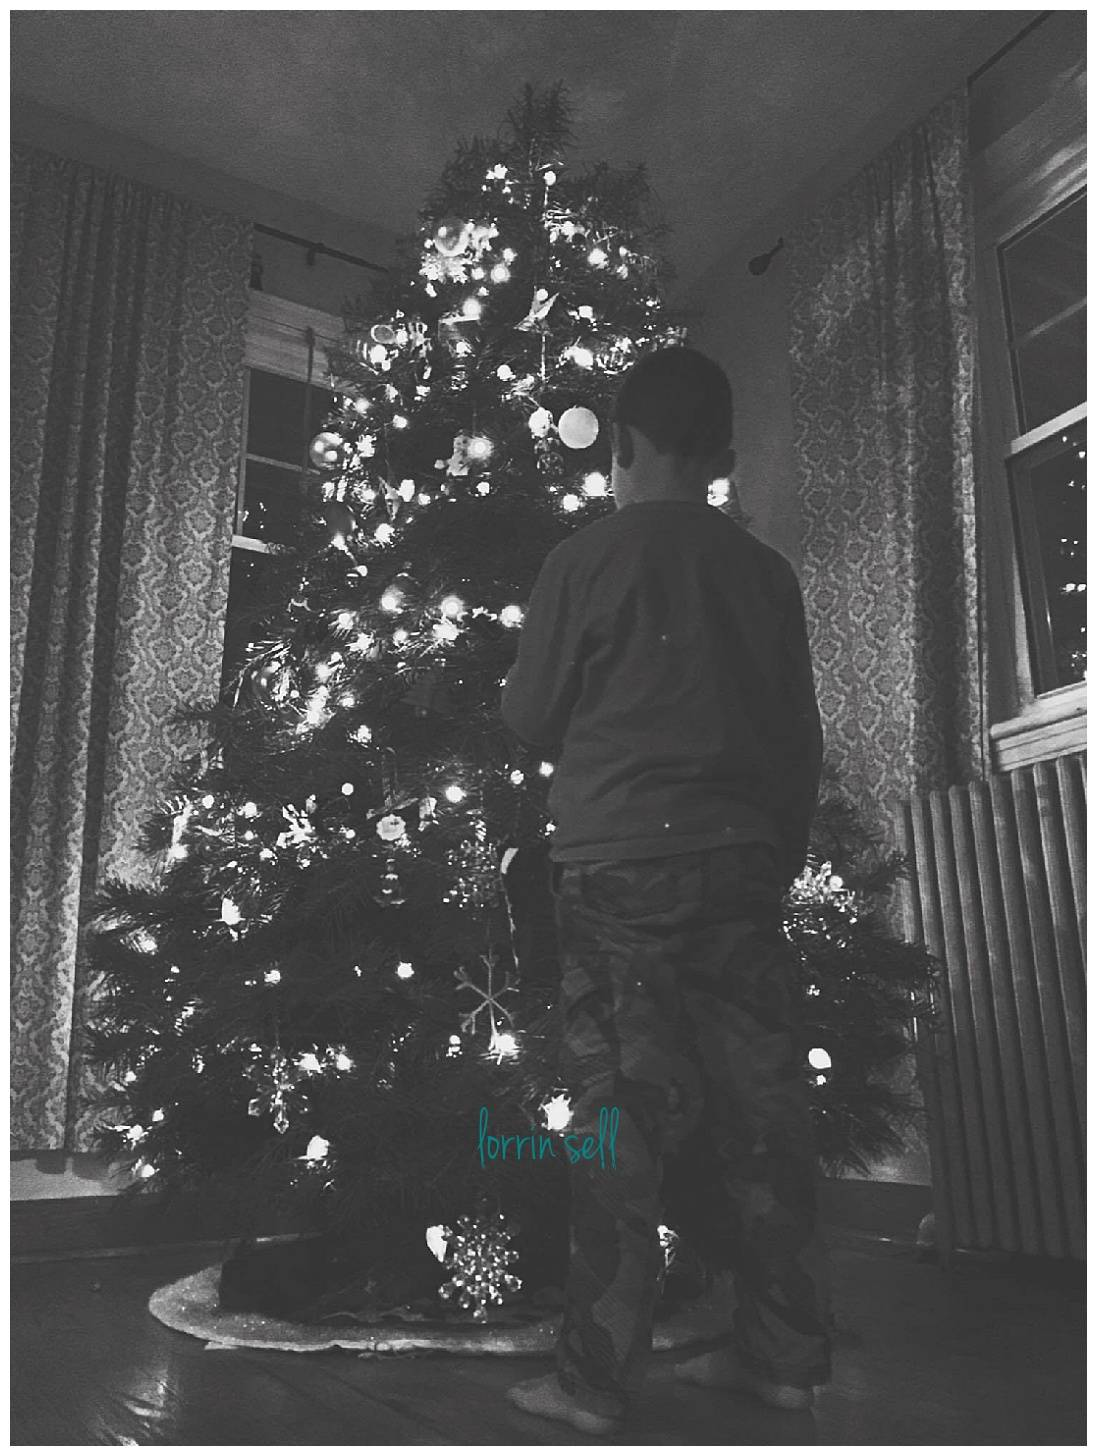 Everyone loves taking pictures of their Christmas tree. You can get amazing pictures even with your iphone!